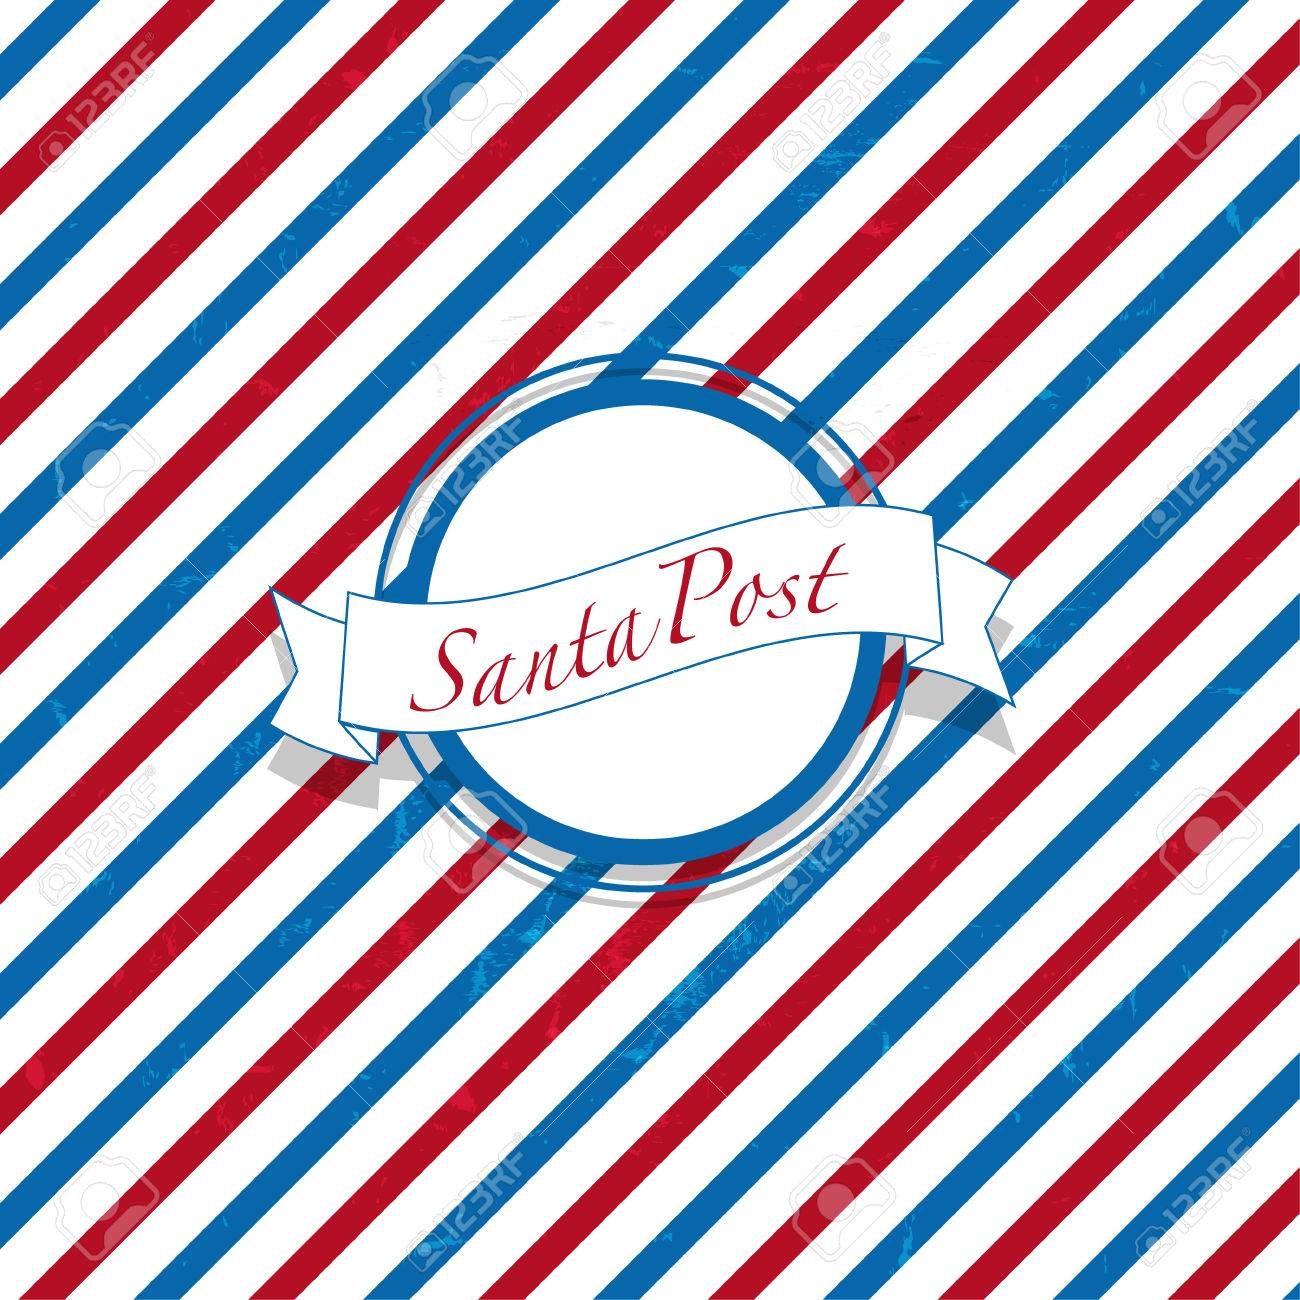 Christmas Santa Post Red And Blue Mail Background Stock Photo ...